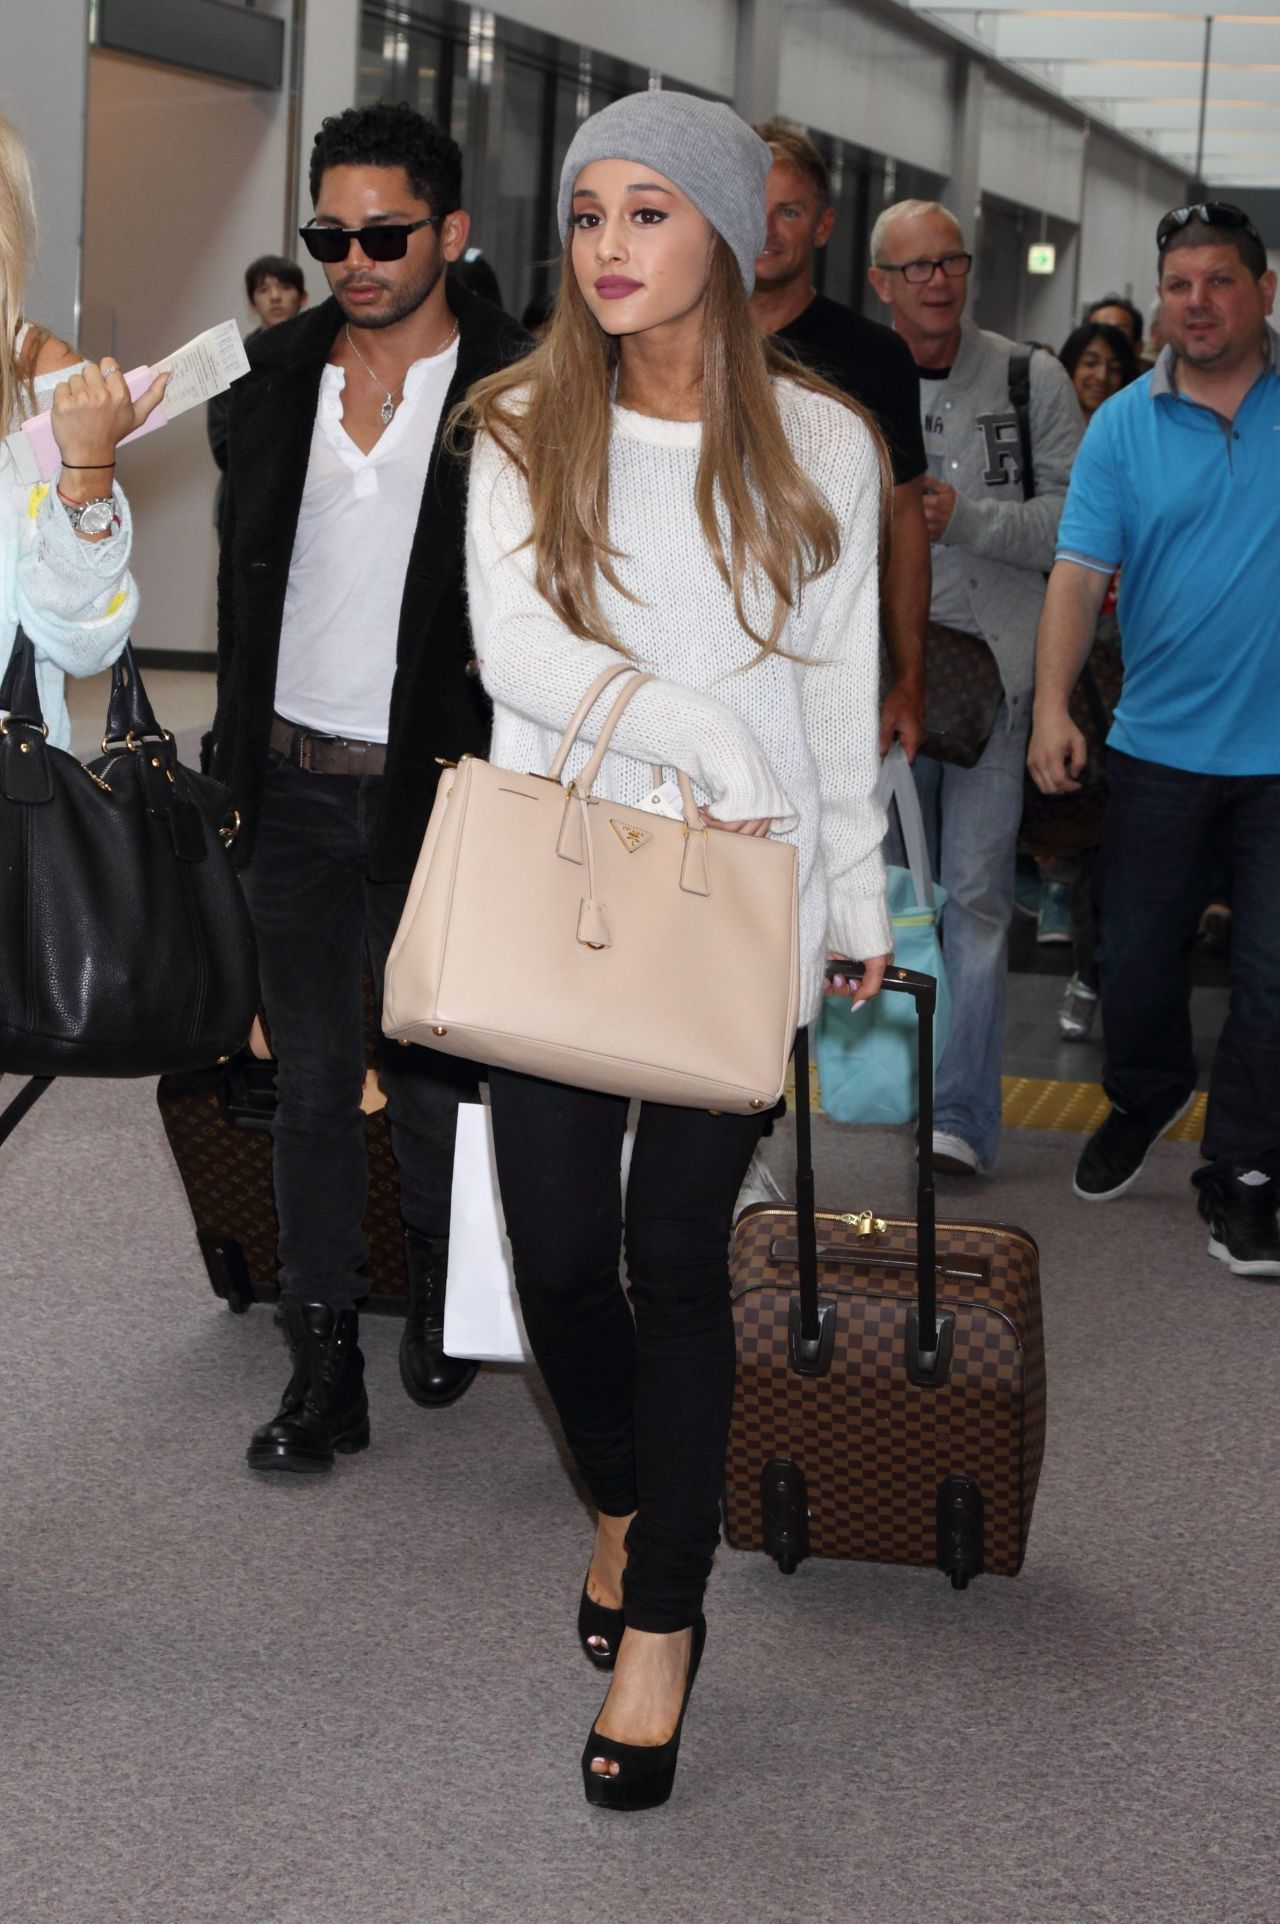 Ariana Grande Fashion Casual Outfit C S Pinterest Ariana Grande Fashion